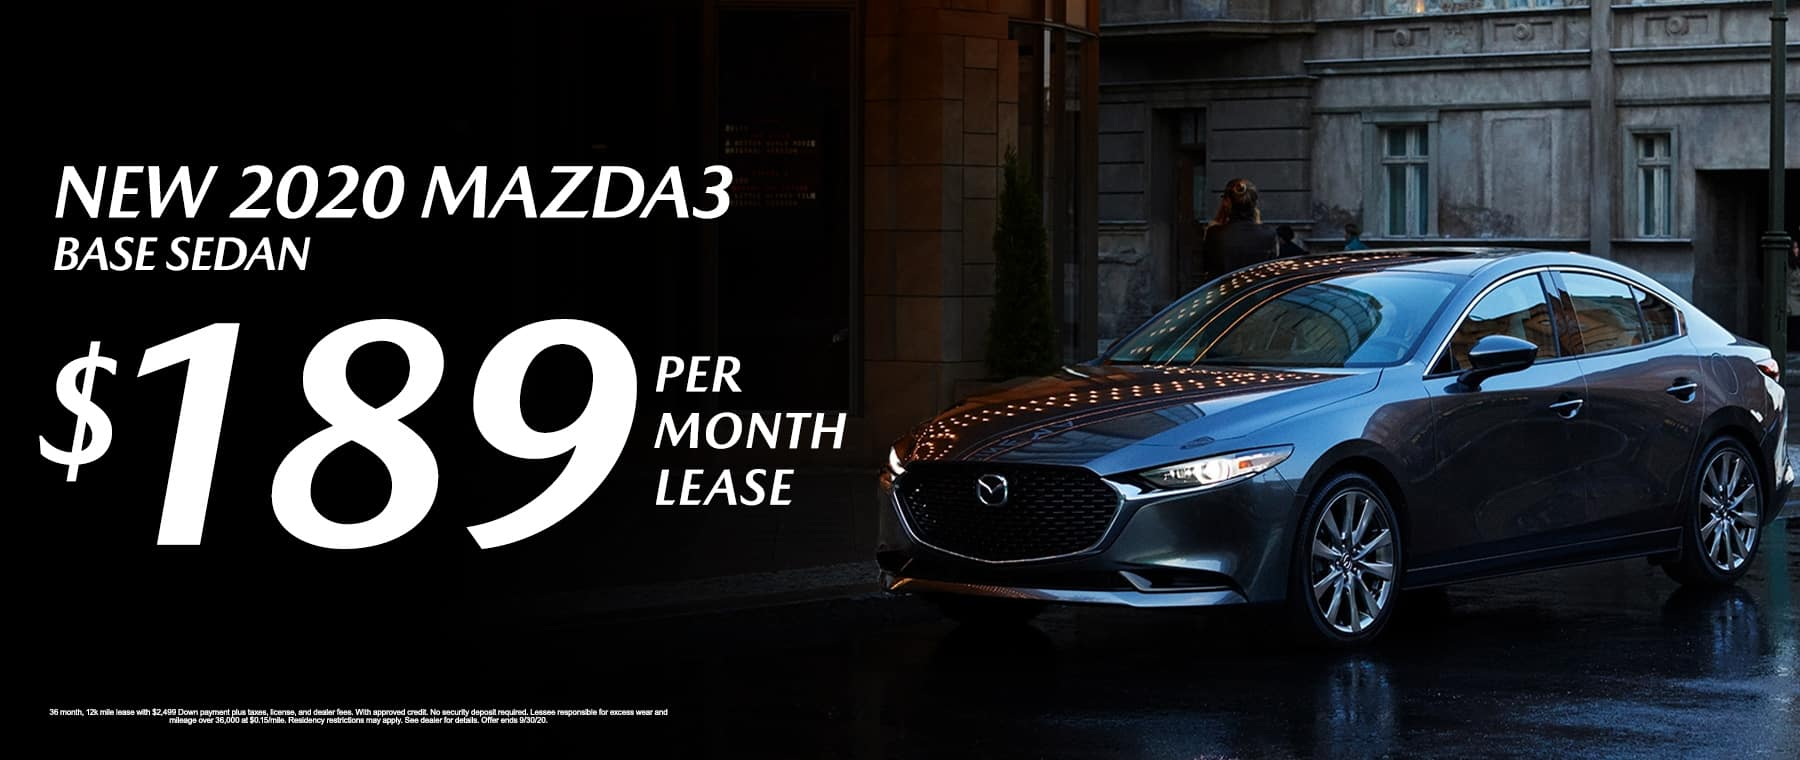 Lease a New 2020 Mazda3 Base Sedan for $189 per month at Mazda of Fort Walton Beach!